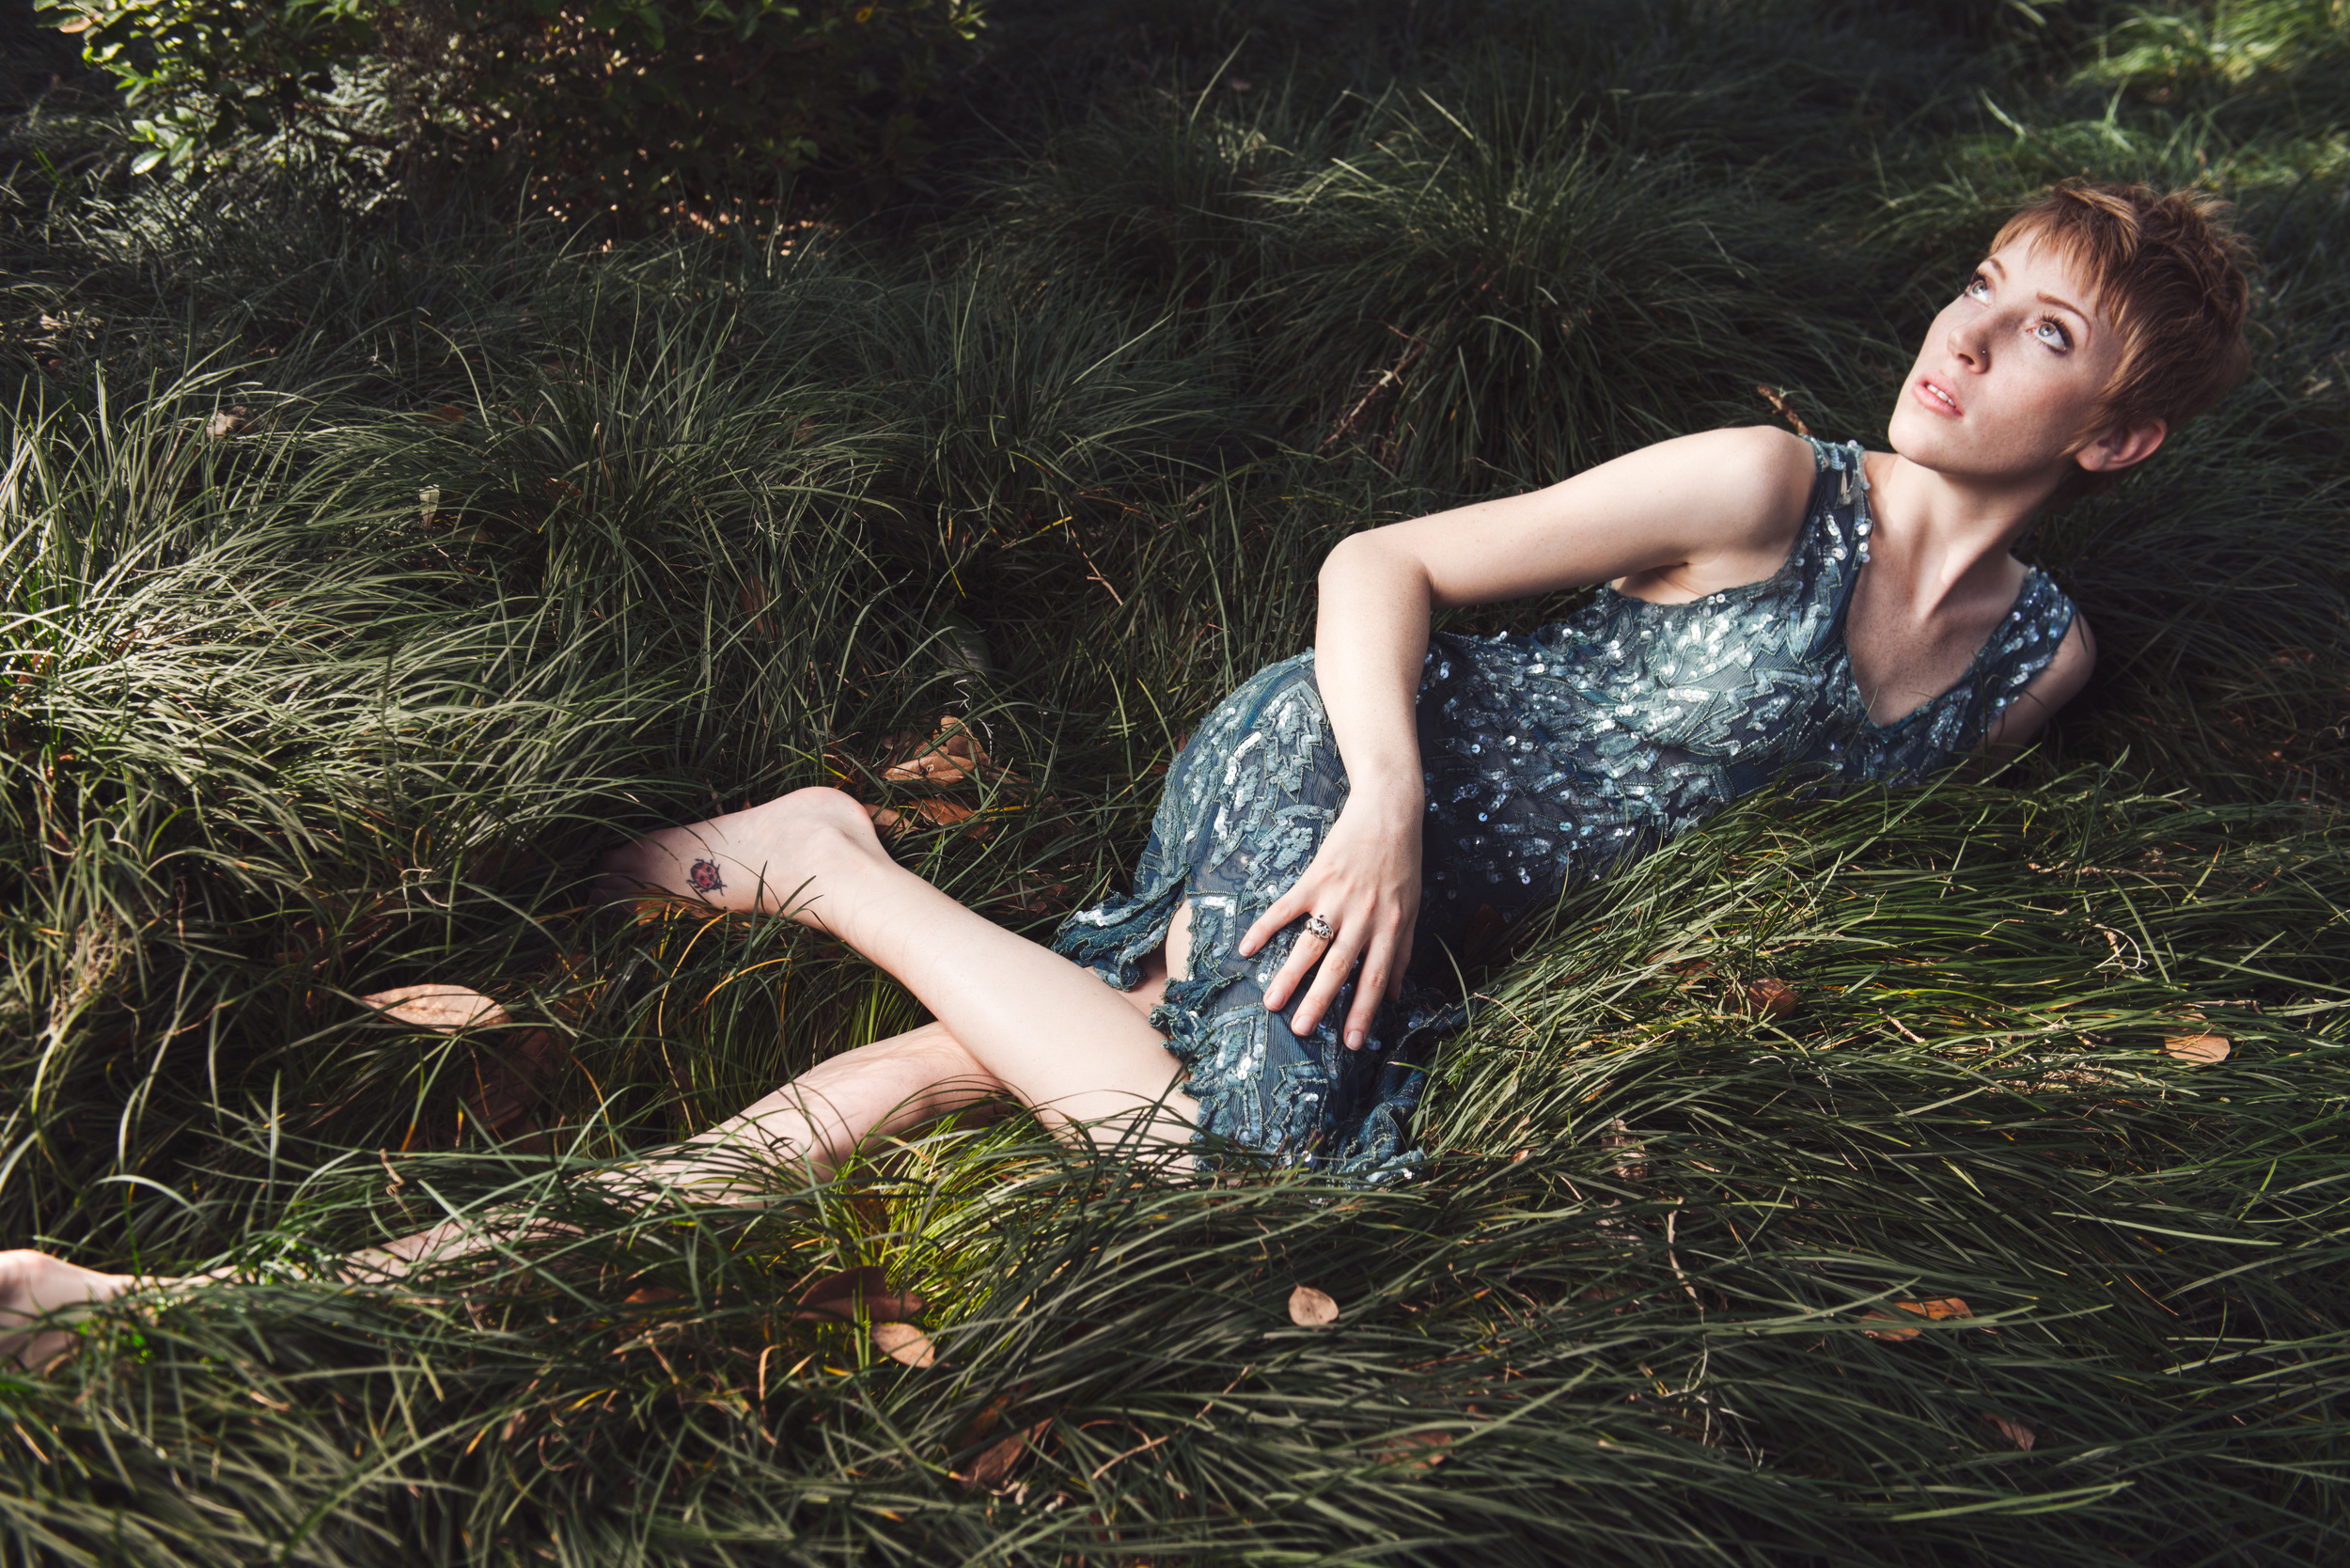 commercial-fashion-woman-lifestyle-photograph-green.jpg